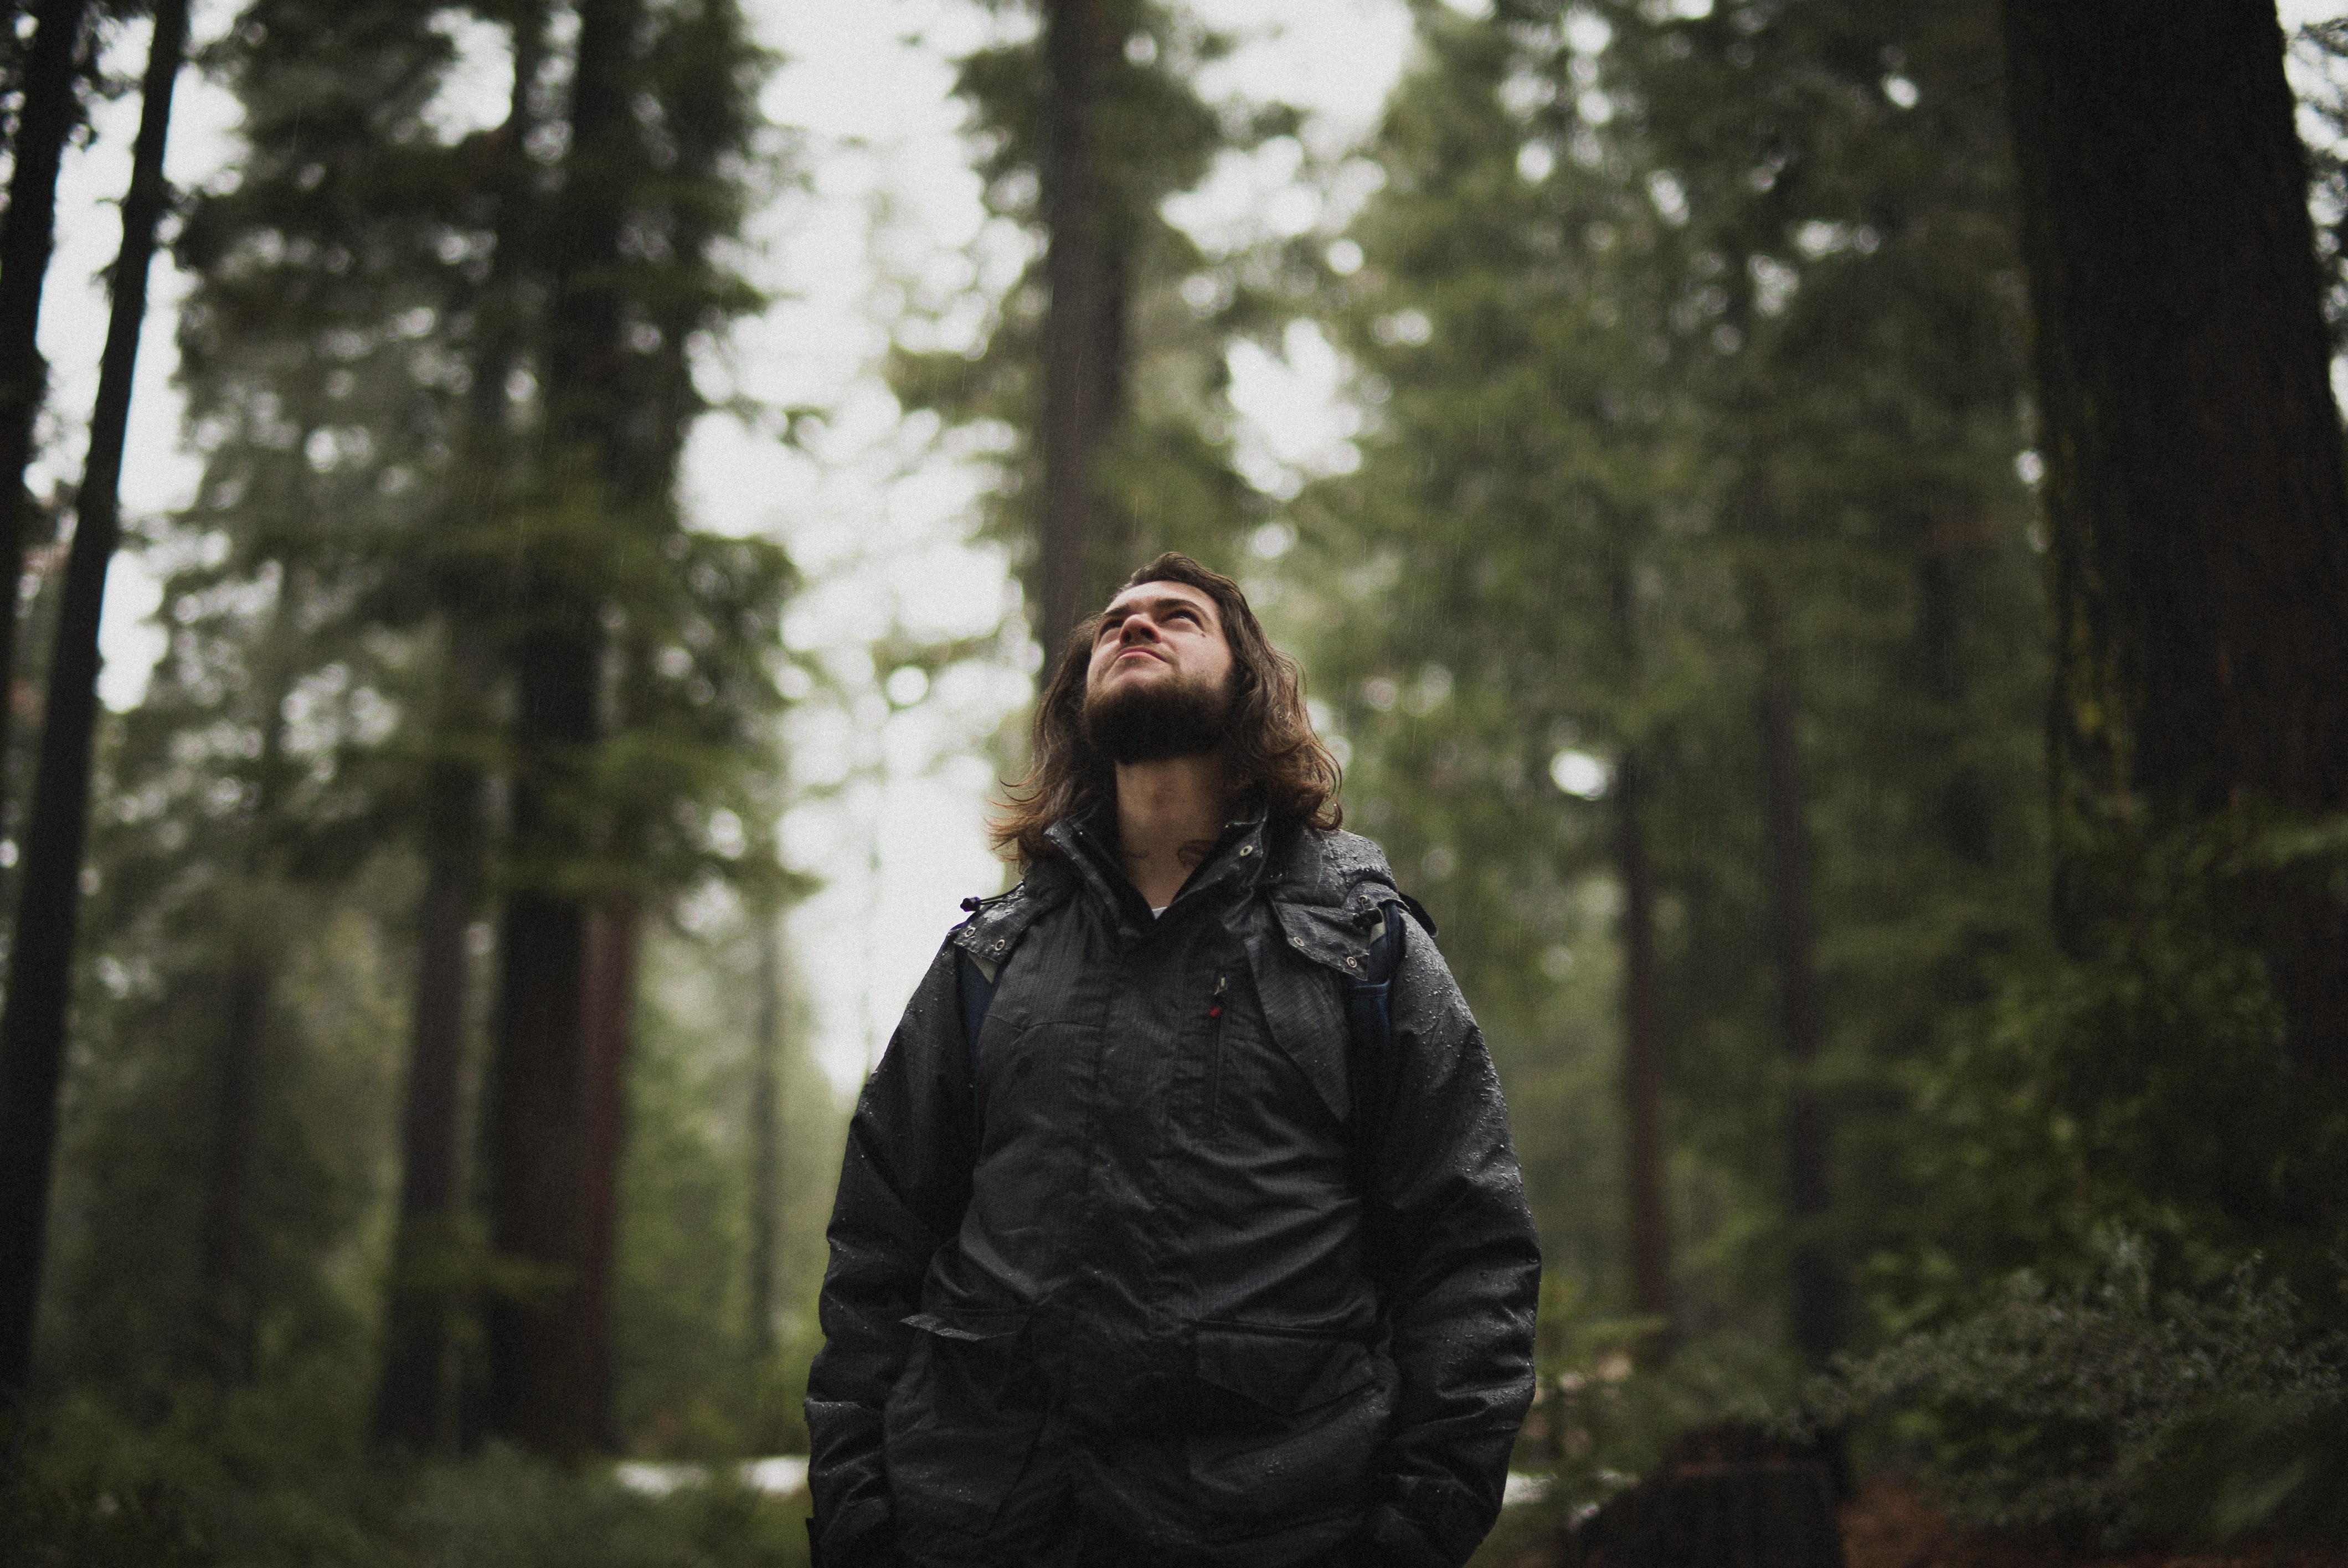 A man in a wet jacket in a forest